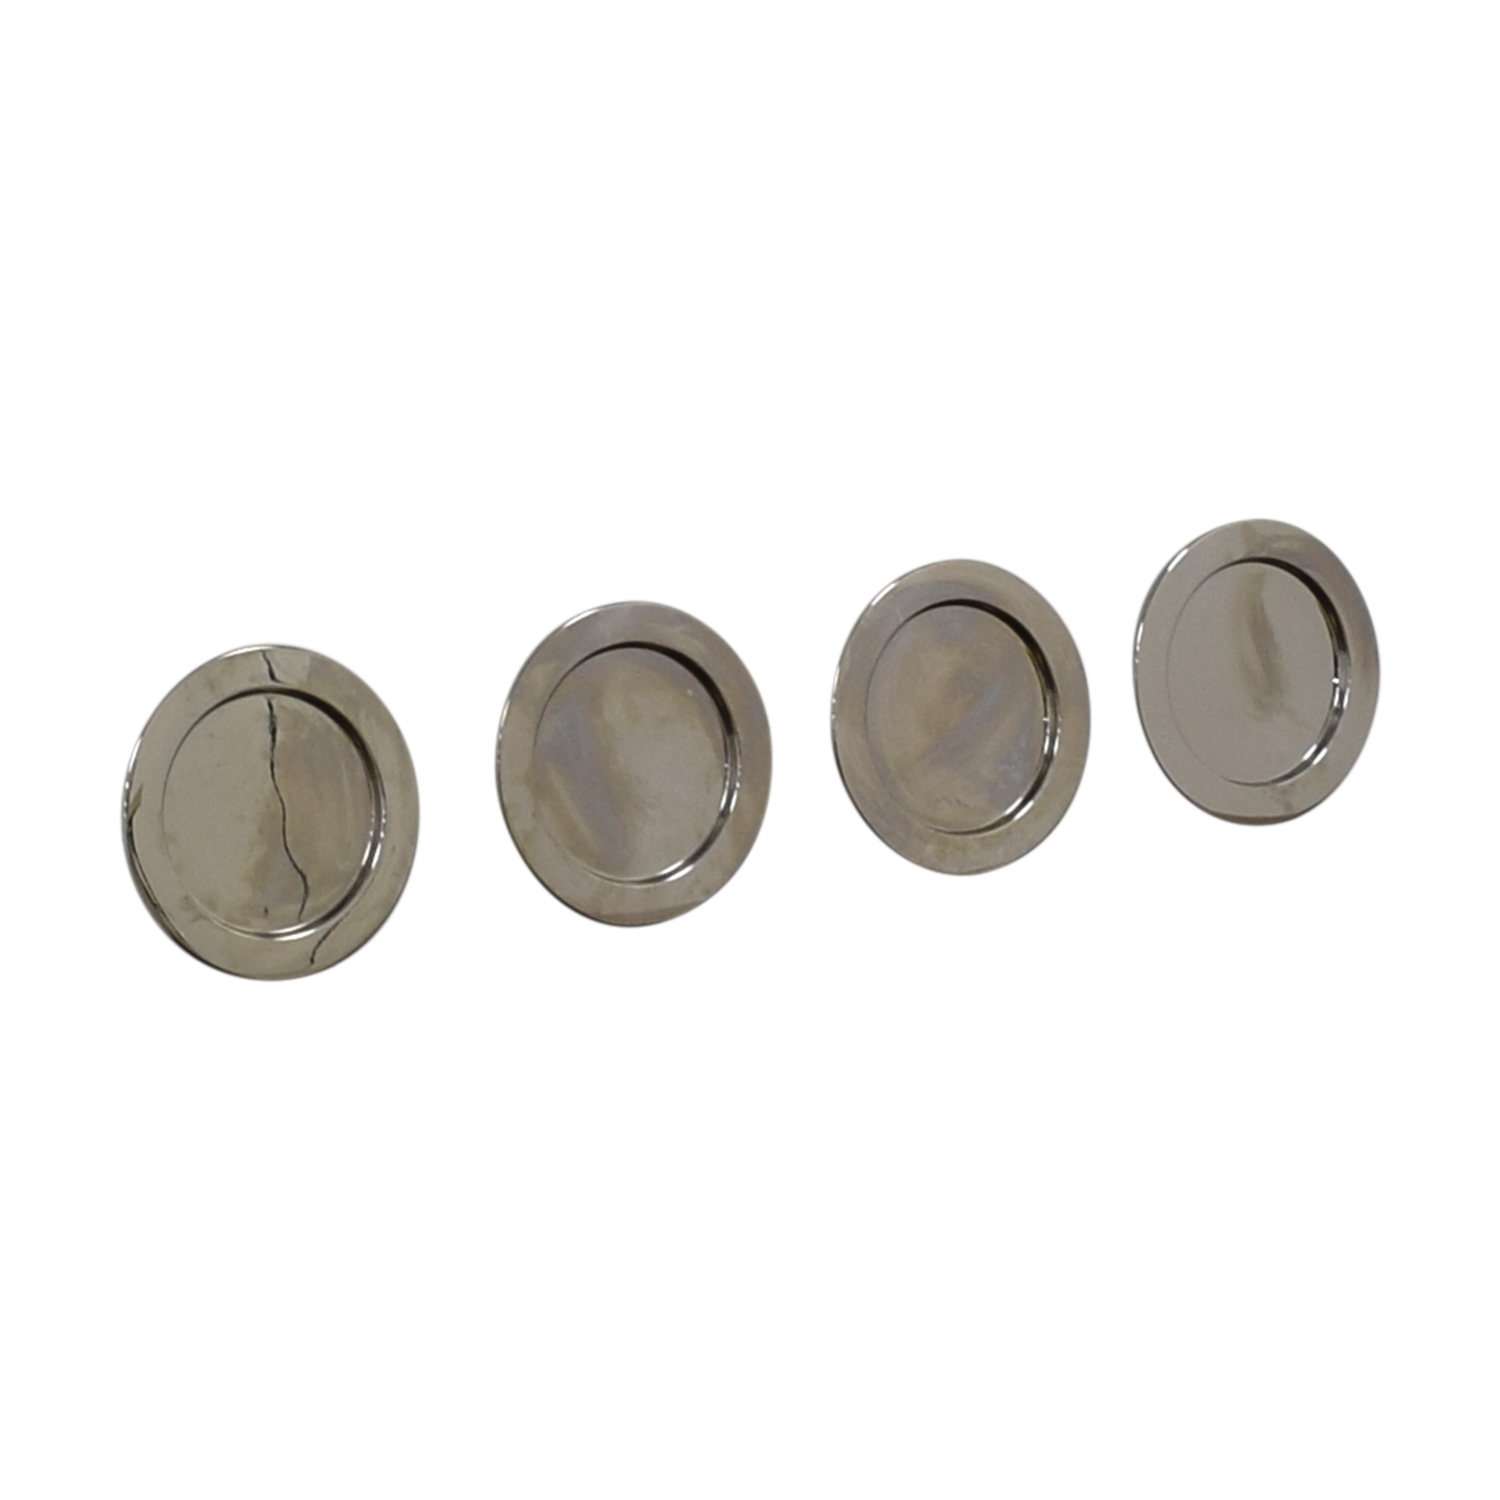 shop Alessi Silver Round Plates Alessi Decorative Accents